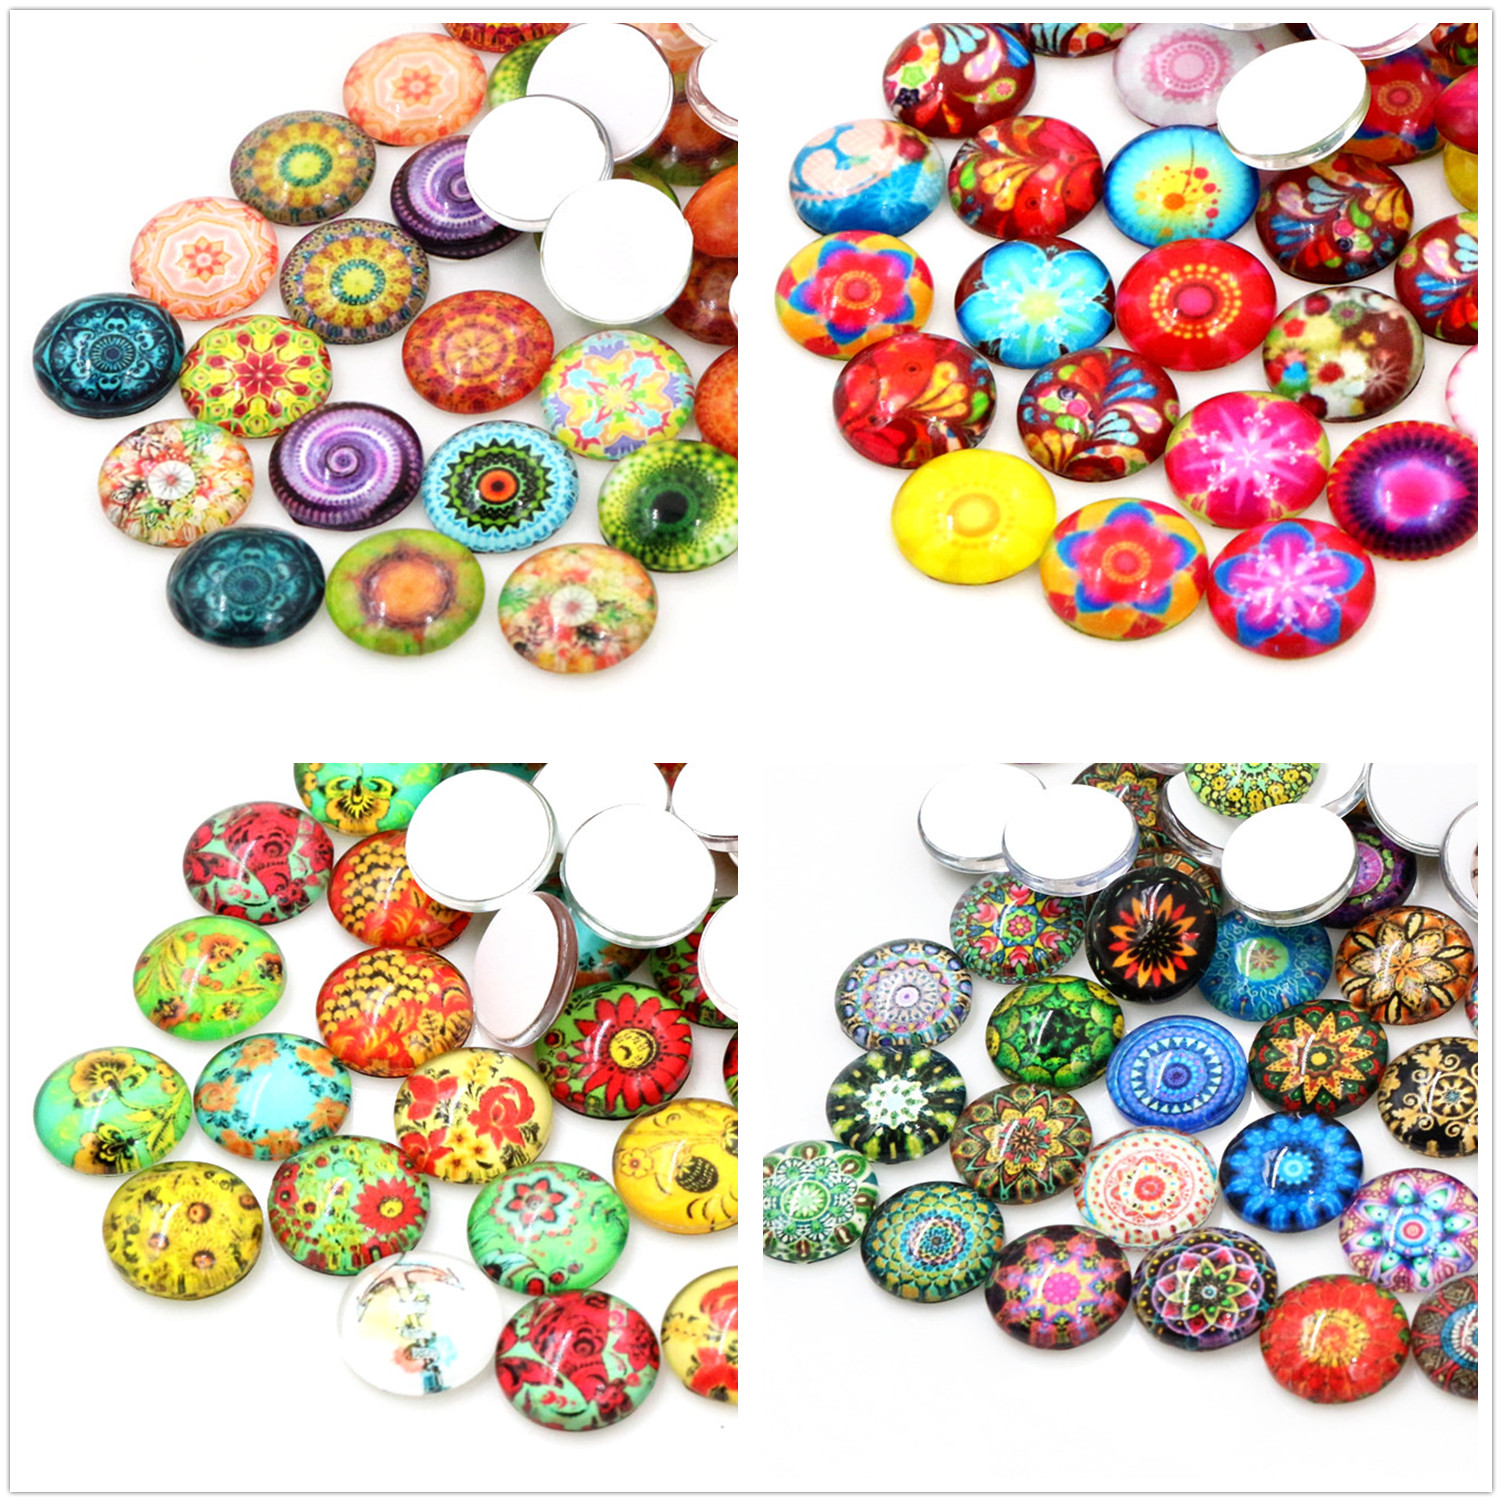 50pcs/Lot 12mm Colorful Fashion Flower Photo Glass Cabochons Mixed Color Cabochons For Bracelet Earrings Necklace Bases Settings